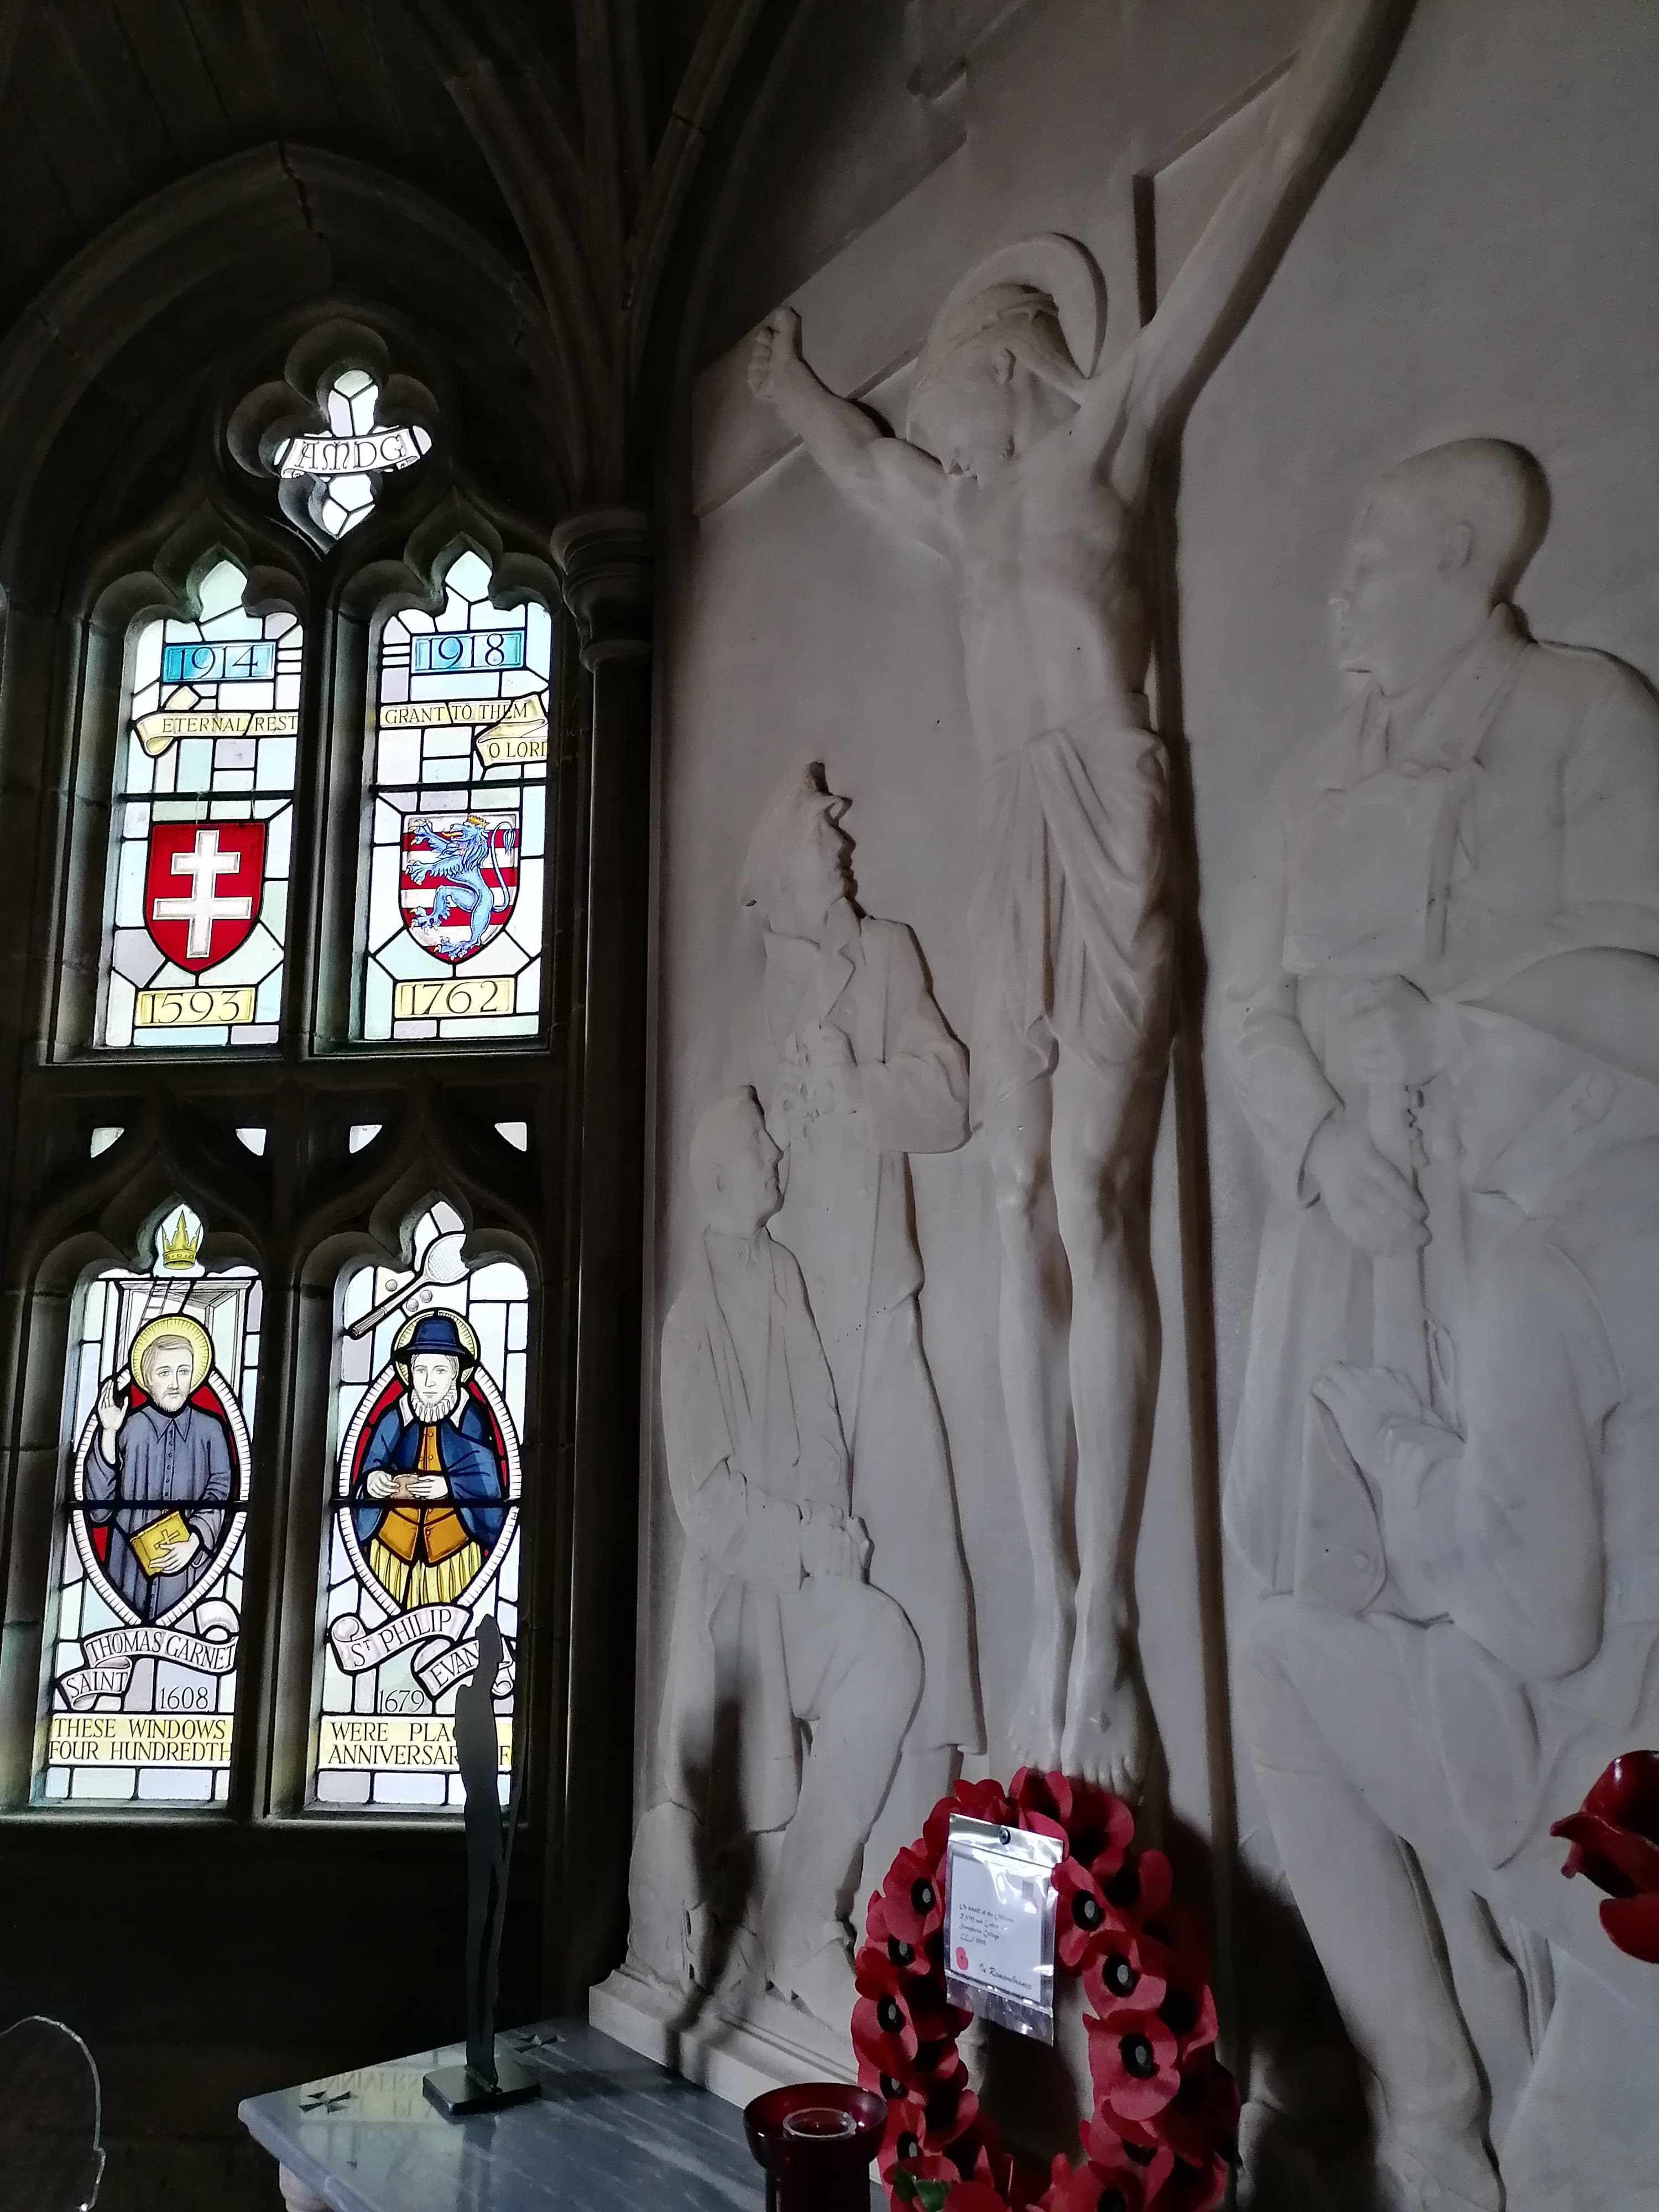 In the foreground of this photograph is a carved image of Jesus on the cross. Four men dressed as soldiers have been carved at the base of the cross looking up at Jesus. In the background is a stained glass window. Two figures, Thomas Garnet and Philip Evans, are depicted in the window